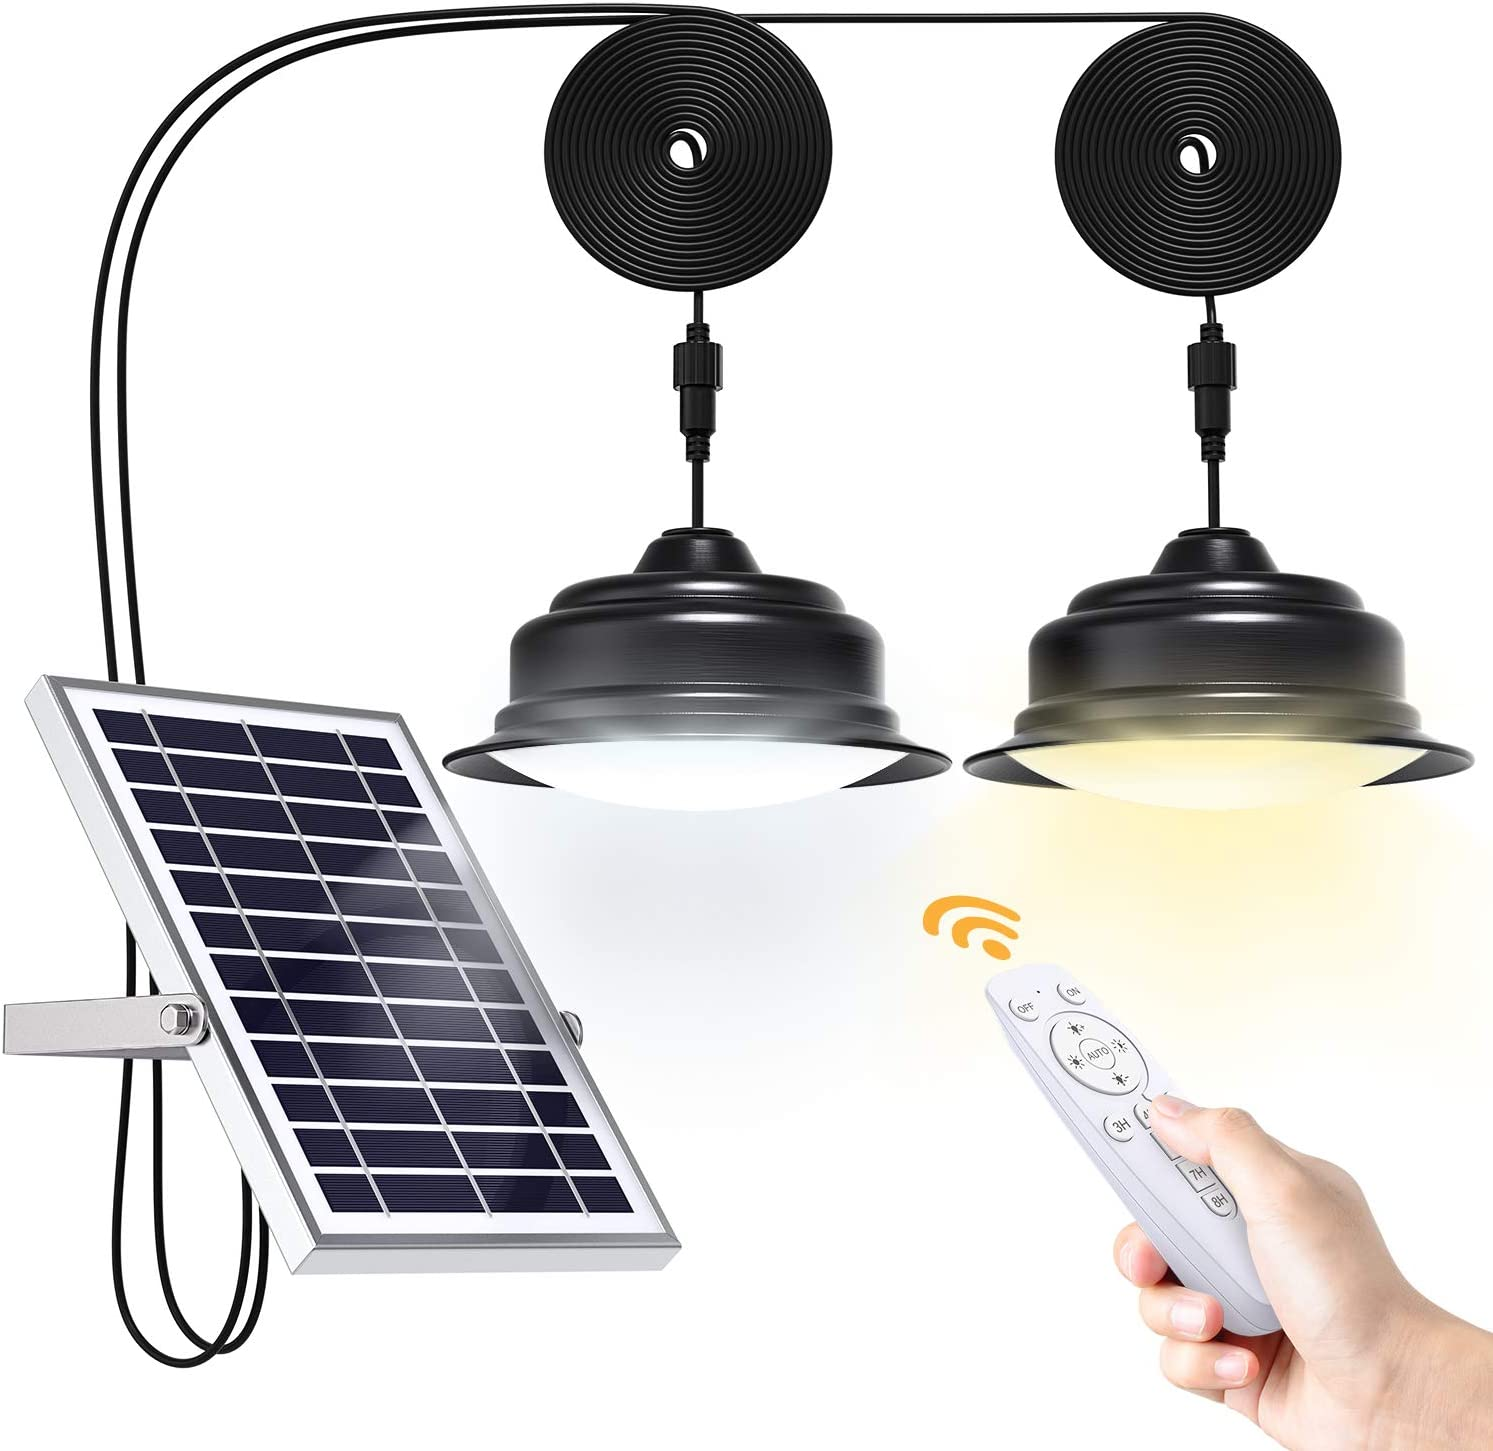 Solar Lights Indoor Outdoor Home Uponun Dual Head Solar Pendant Light with Smart Remote Control Dual Color Switchable Brightness & Timing Adjustable Solar Ceiling Light for Shed Barn Yard Patio Porch